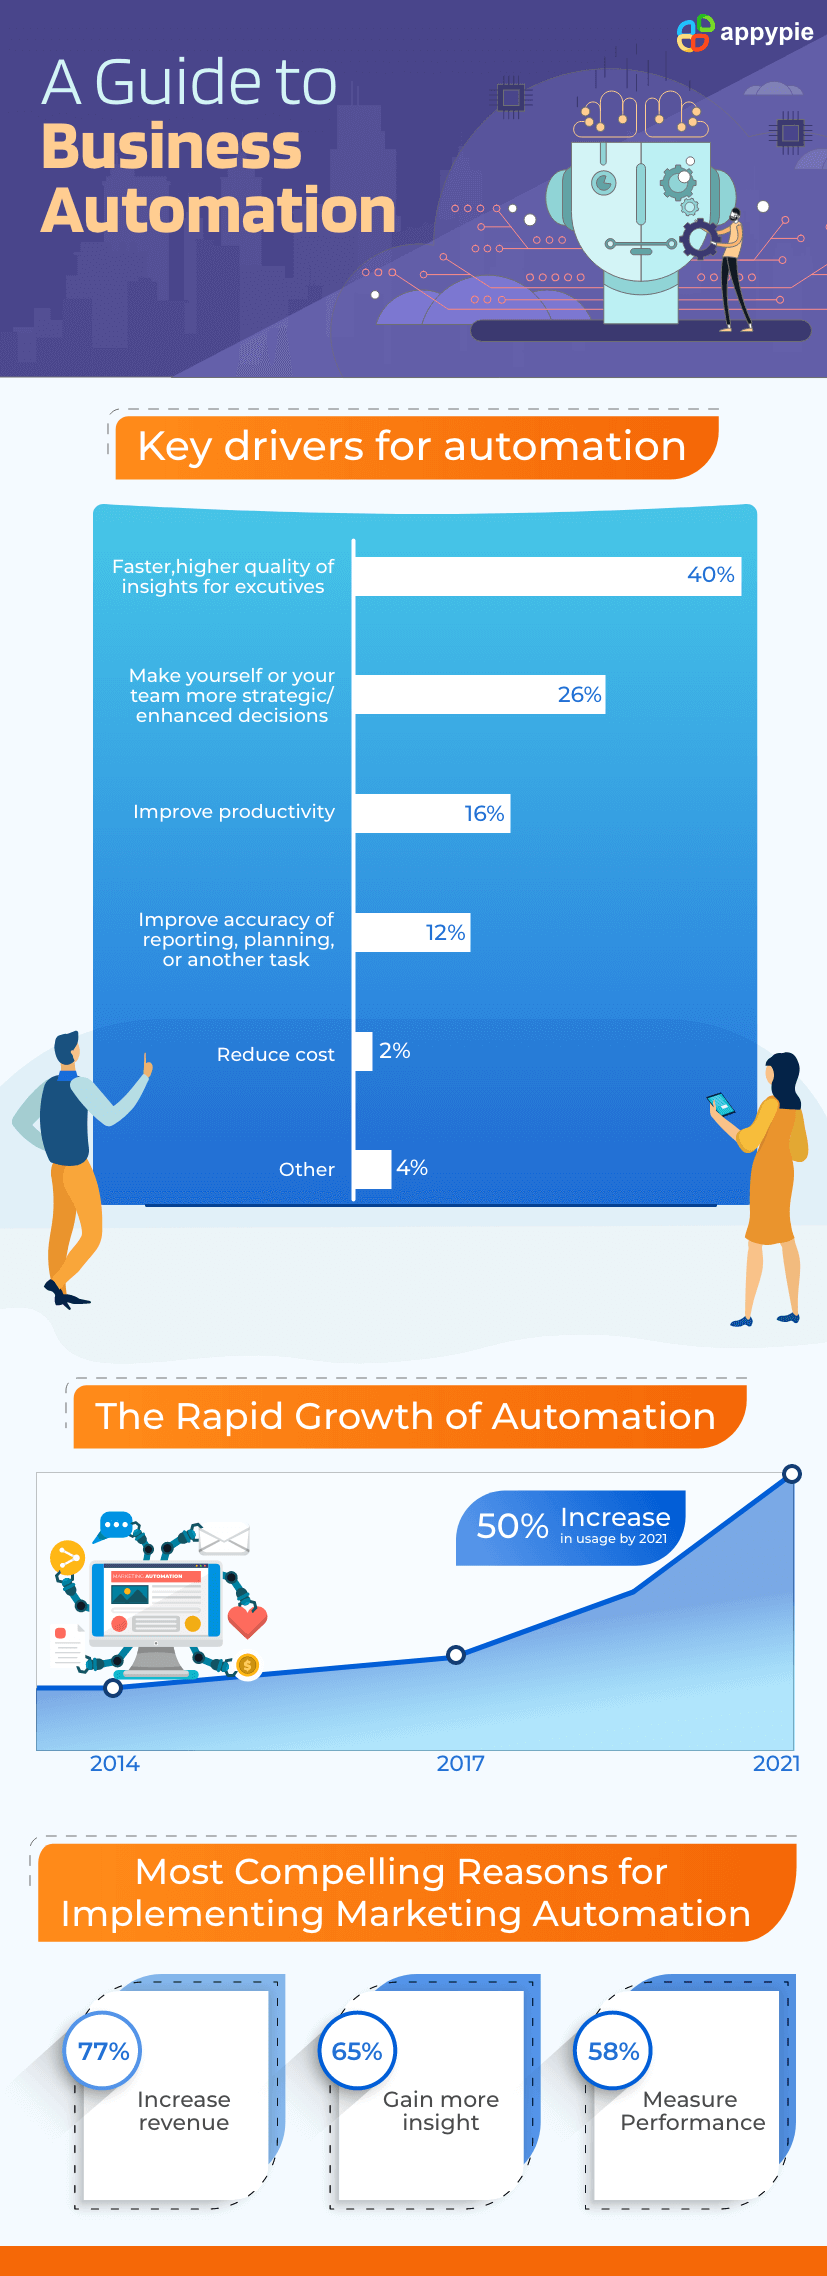 A Guide to Business Automation - Appy Pie